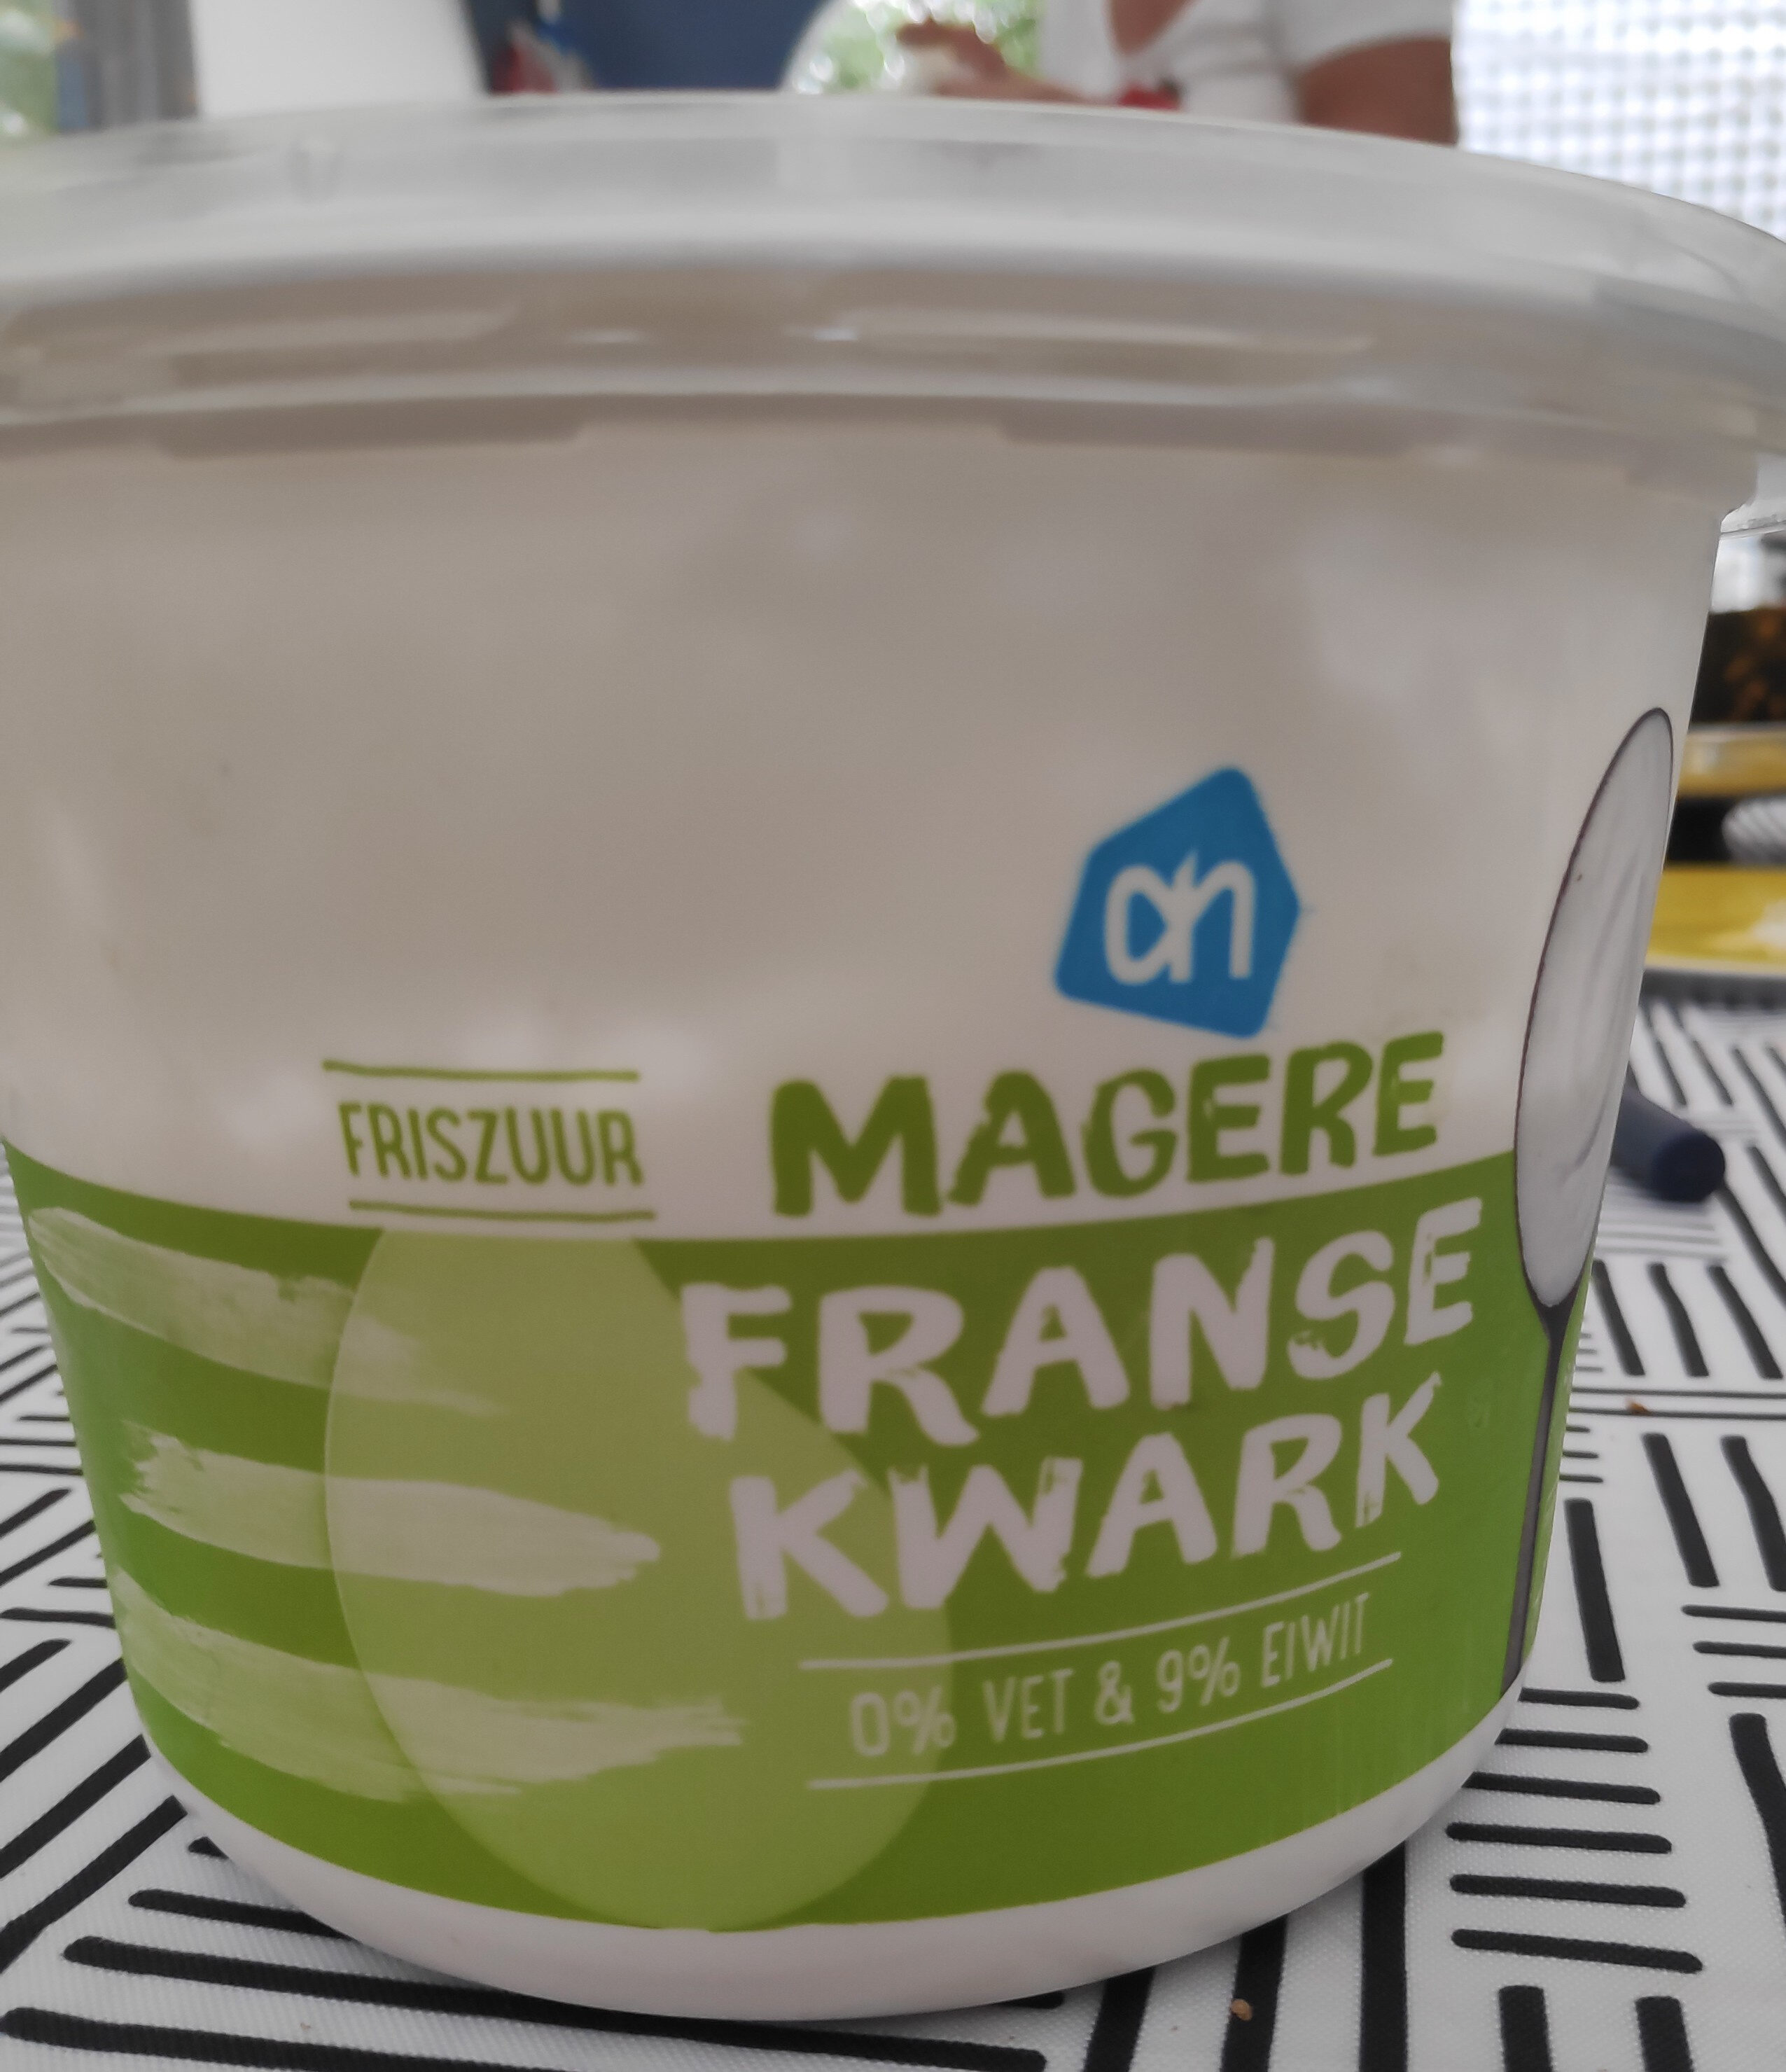 Magere Franse kwark - Product - en